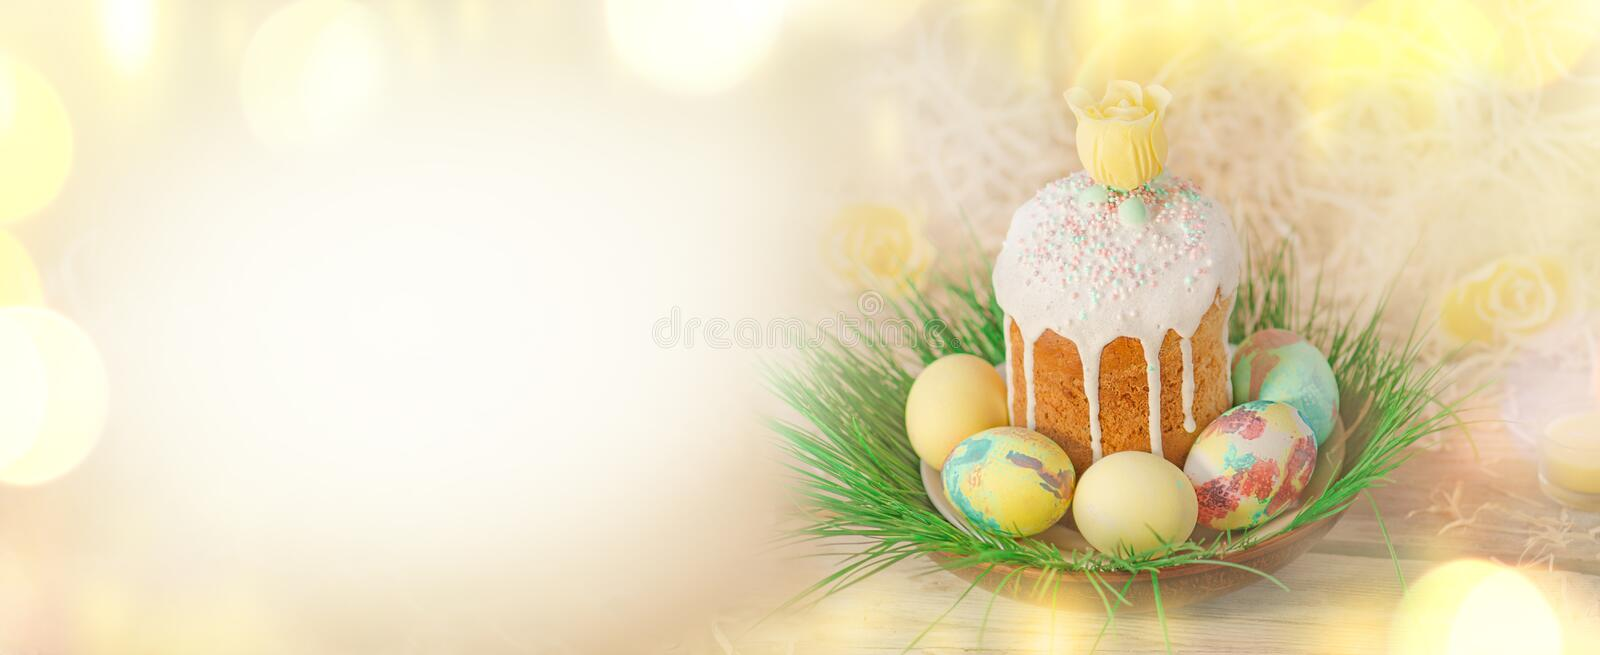 Spring flower banner background with Easter eggs. Easter holiday creative background. stock photo